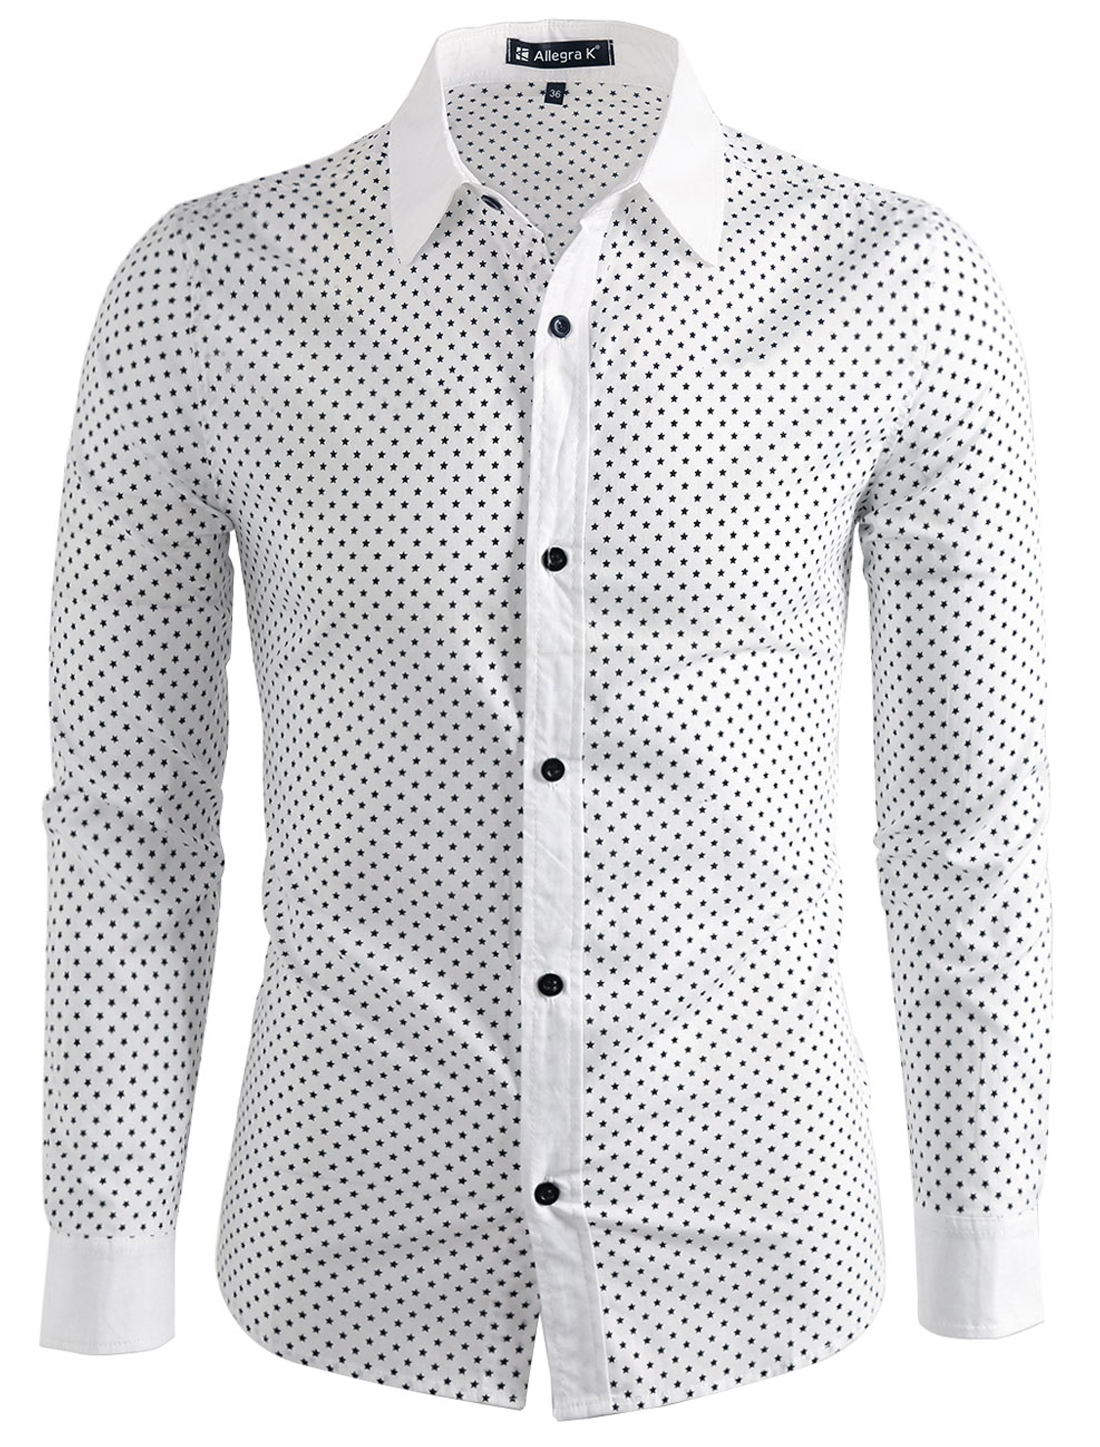 Men Long Sleeves Allover Print Round Hem Button Down Slim Fit Shirt White M